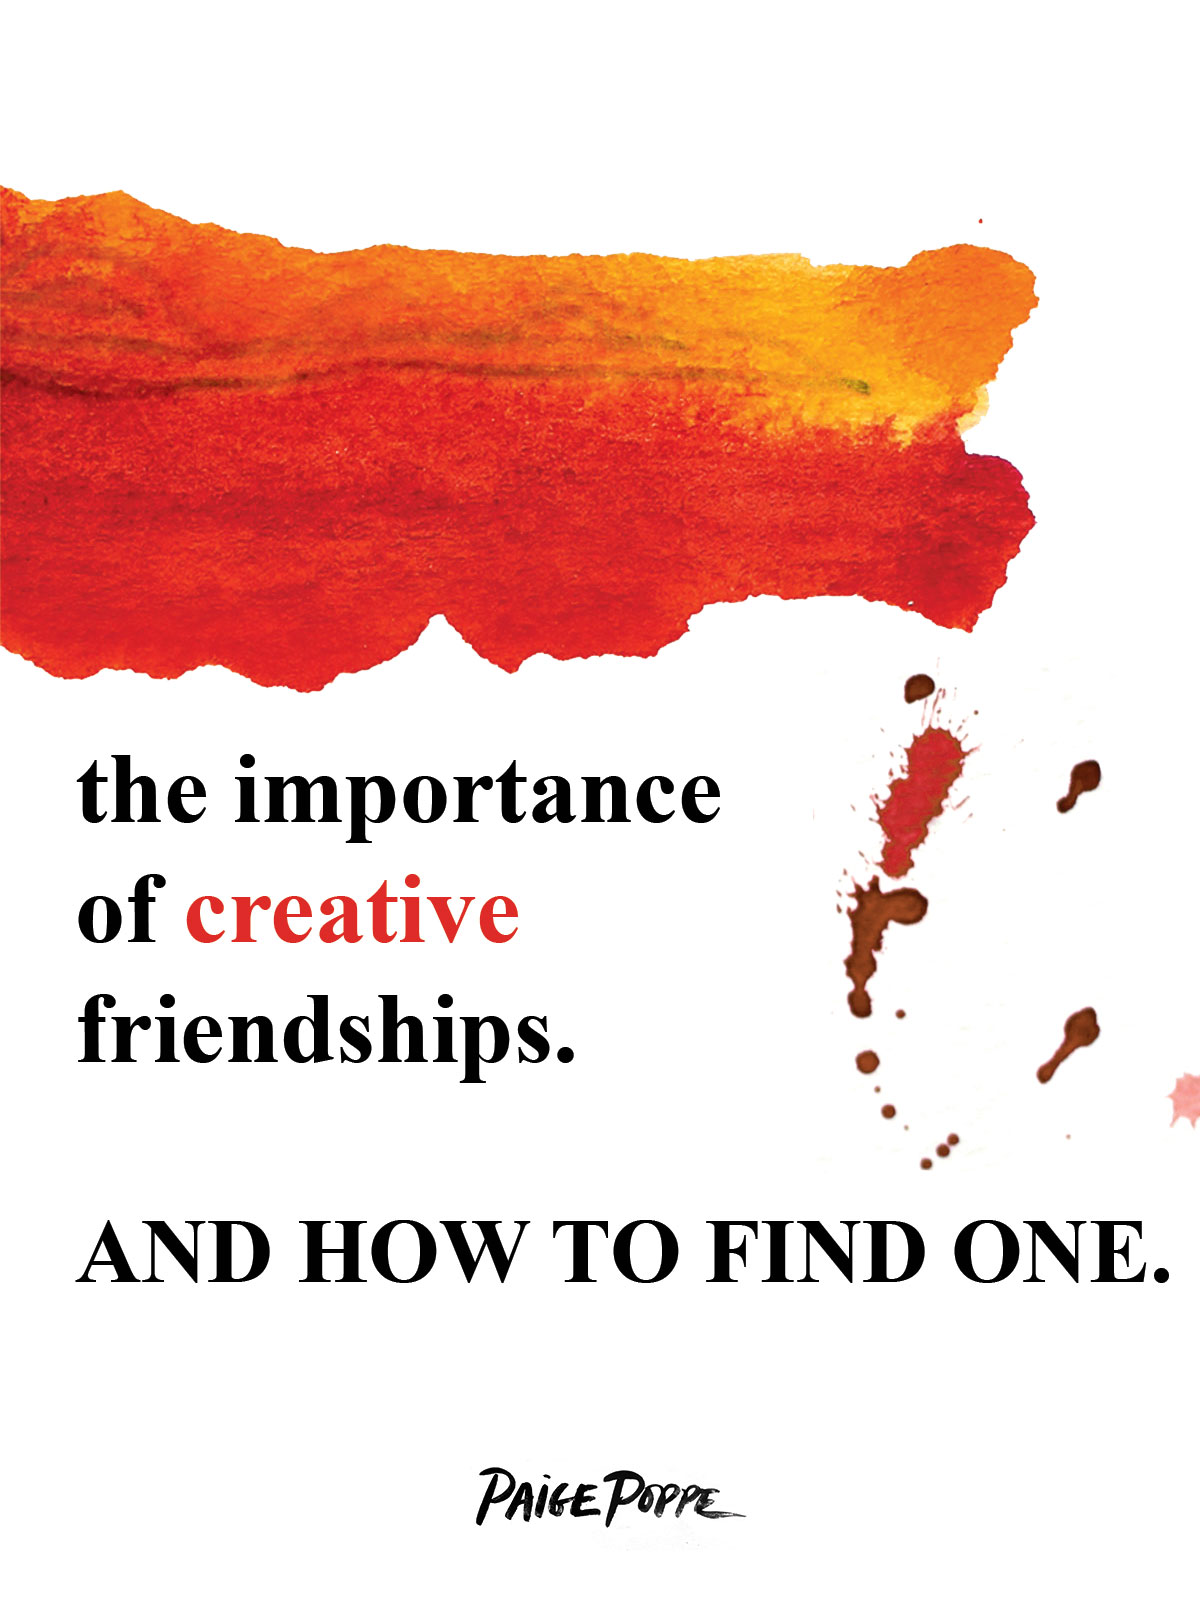 The-Importance-of-Creative-Friendships-and-How-to-Make-Creative-Friendships_by-artist-Paige-Poppe.jpg